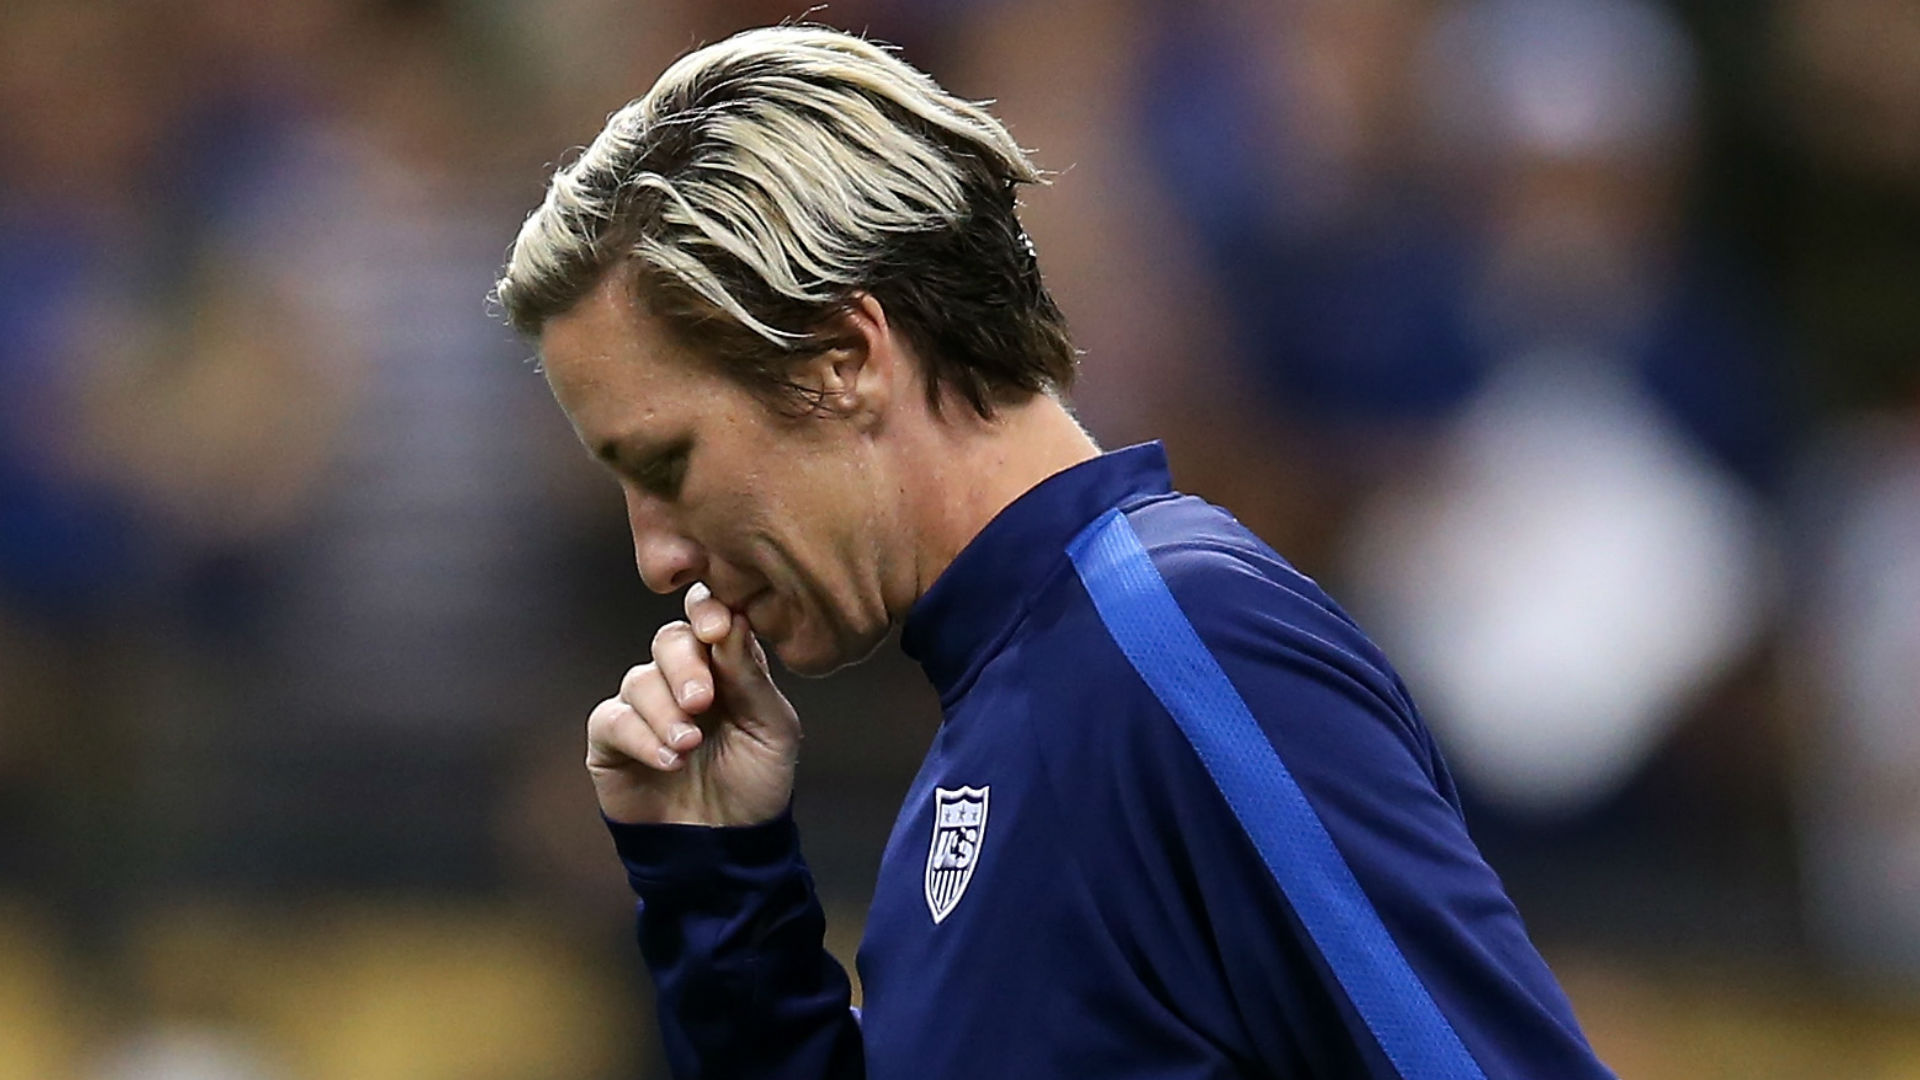 Abby Wambach on Megan Rapinoe, USWNT: They're redefining 'what it means to be a woman'